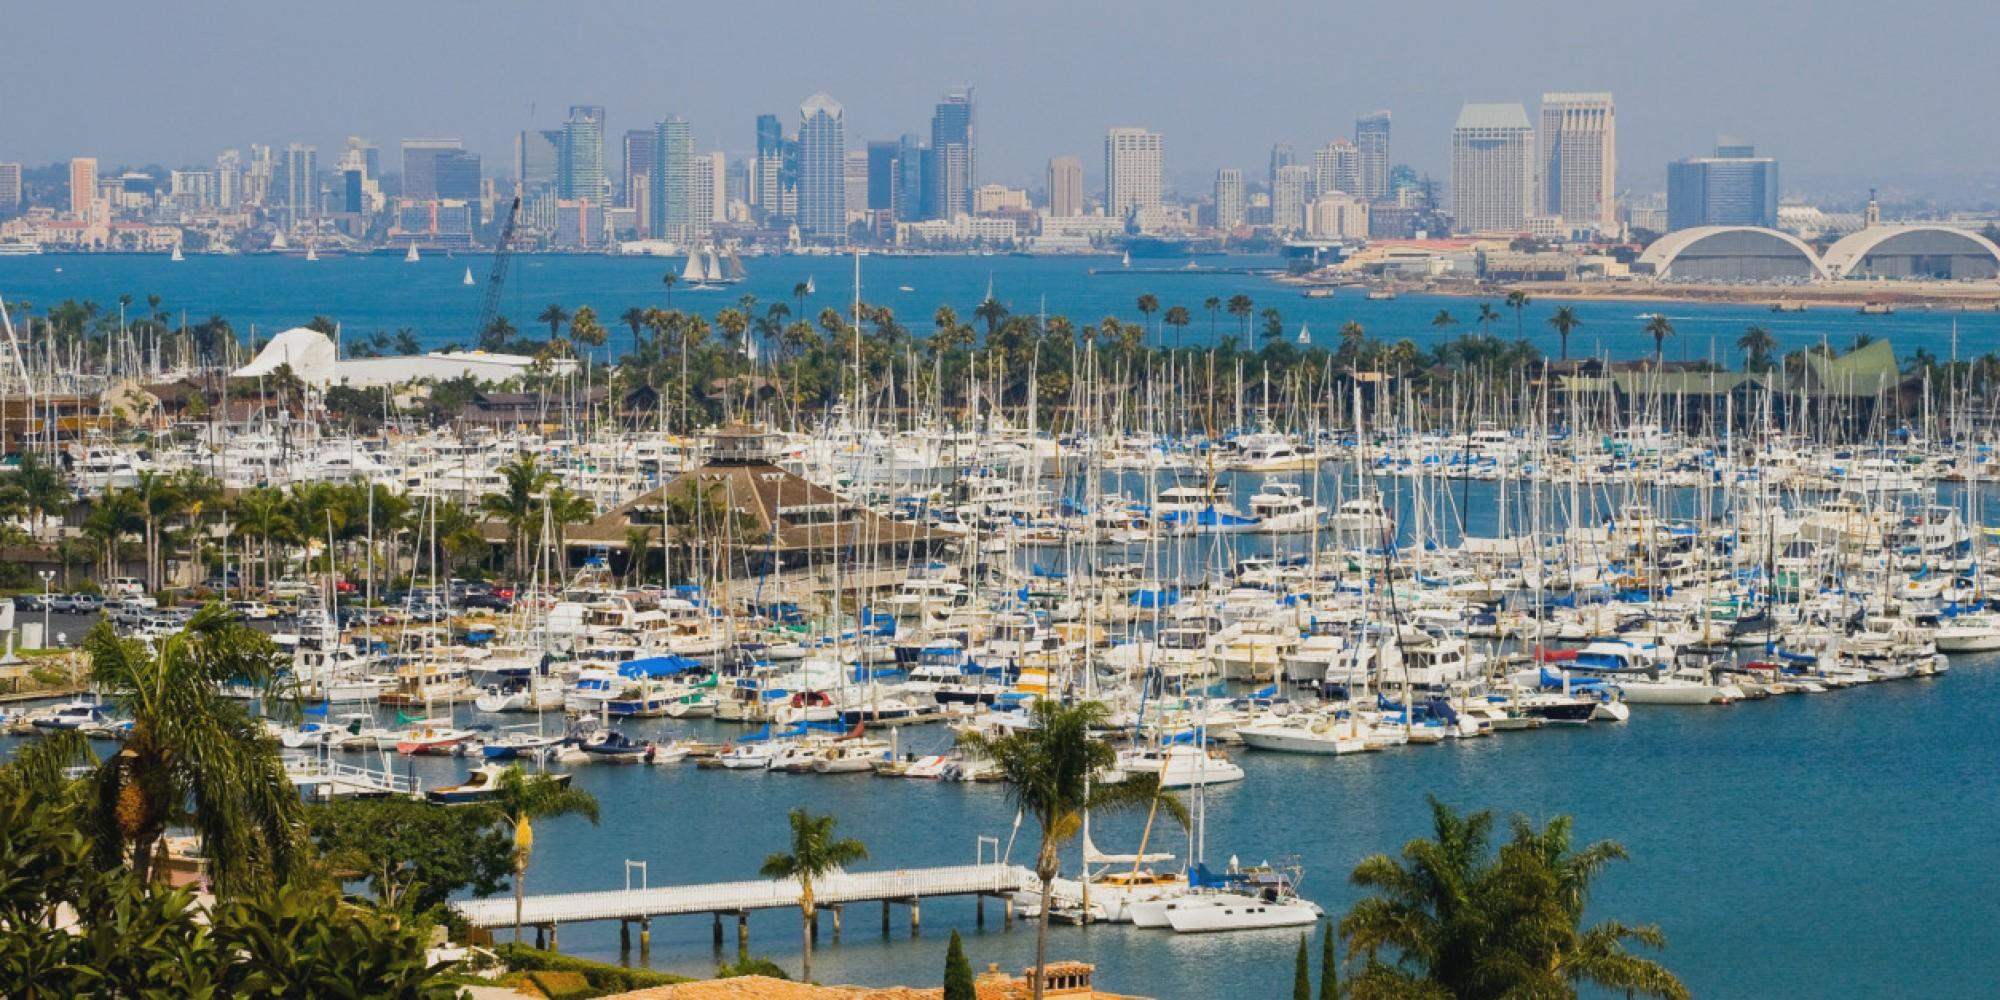 San Diego Wallpapers HD Download 2000x1000